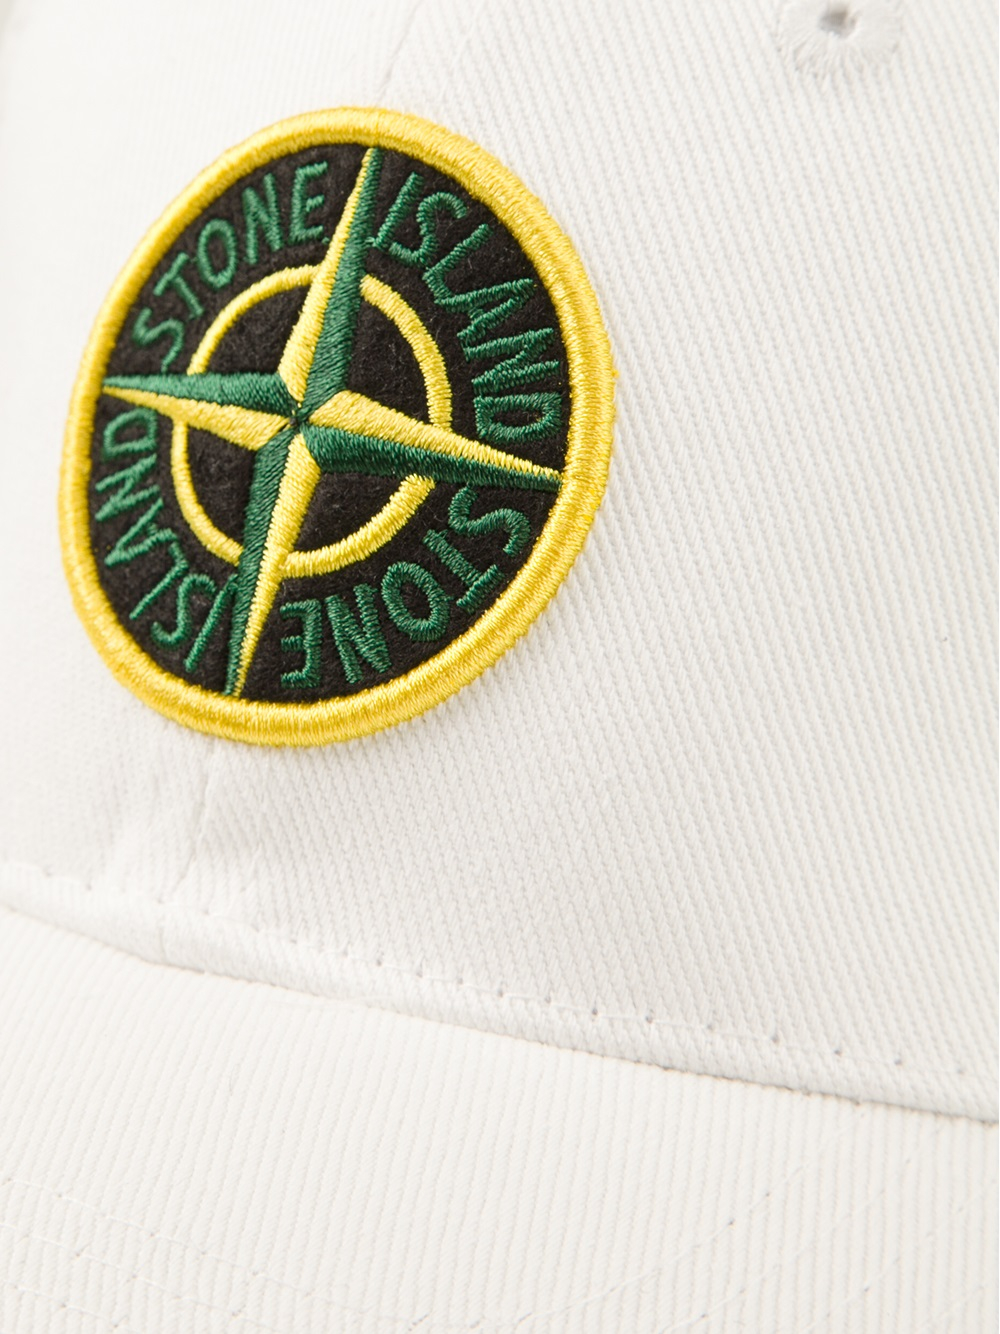 lyst stone island logo baseball cap in white for men. Black Bedroom Furniture Sets. Home Design Ideas